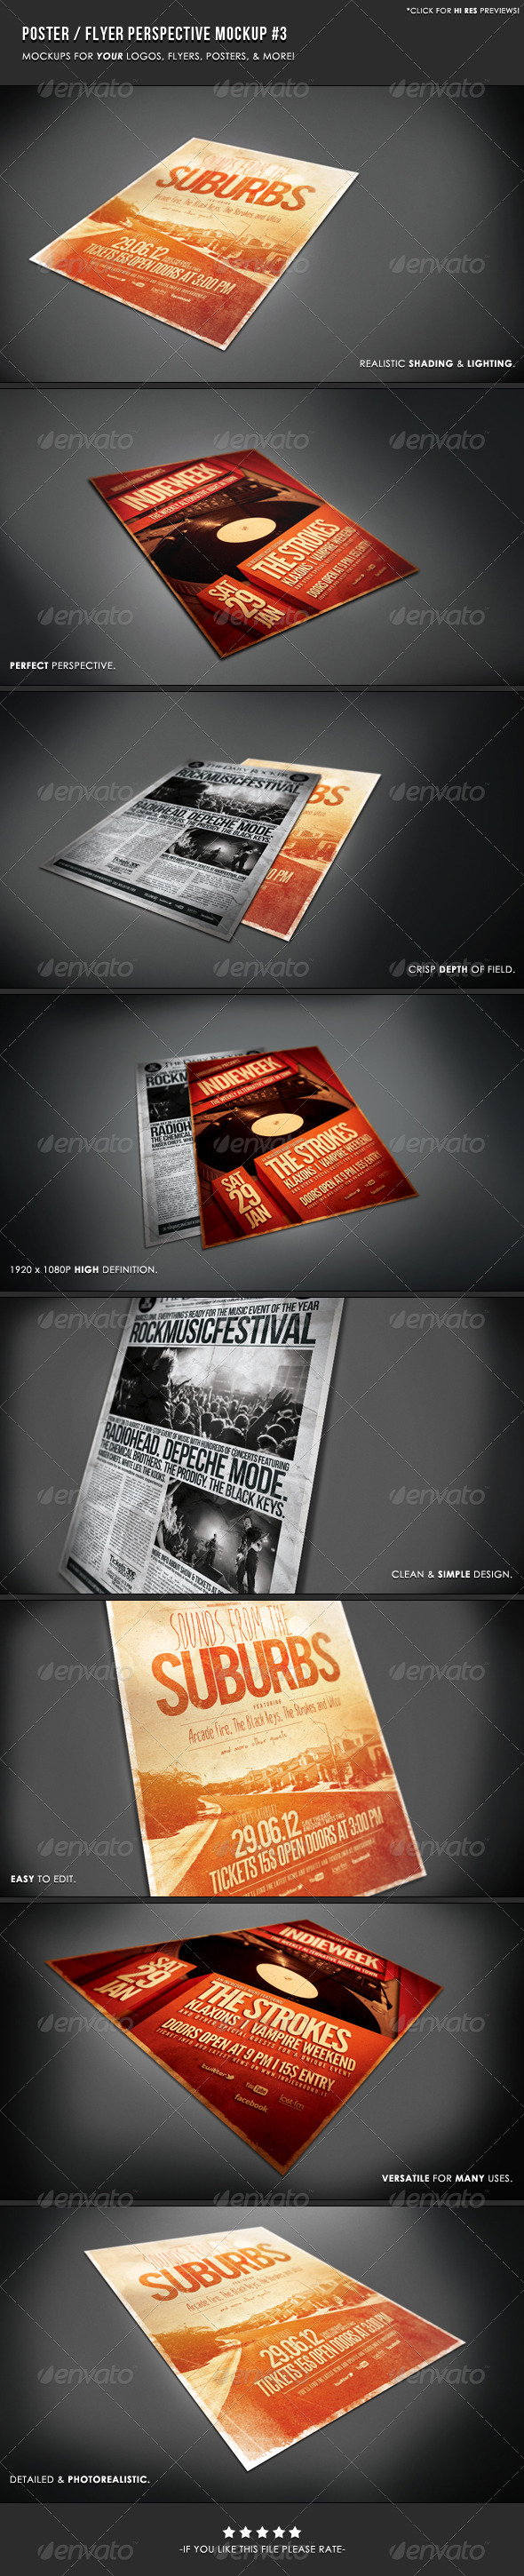 Poster & Flyer Perspective Mockup #3 - Posters Print